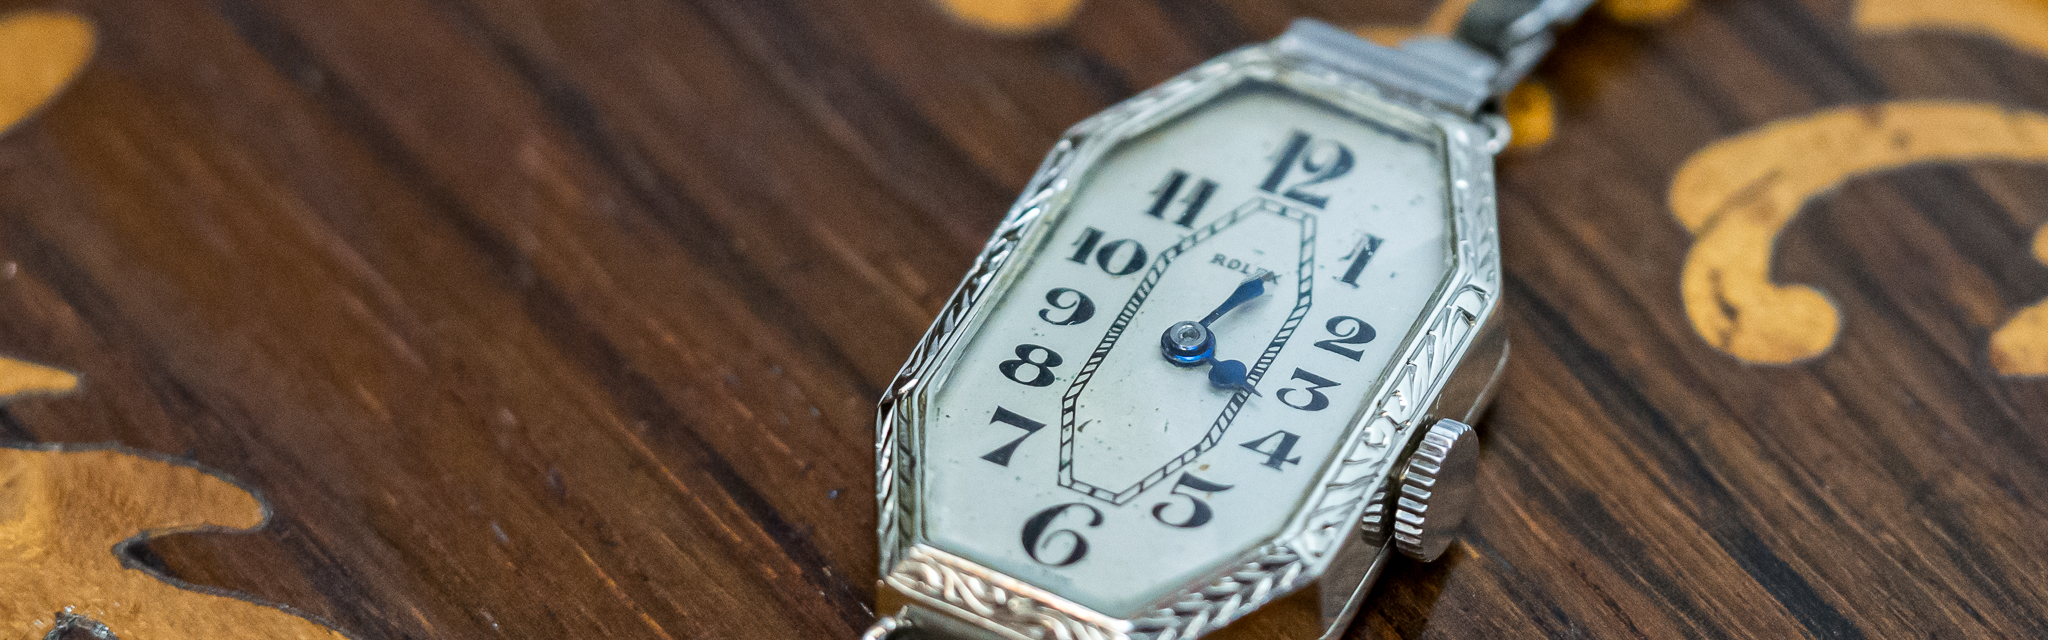 Vintage Watches and Timepieces